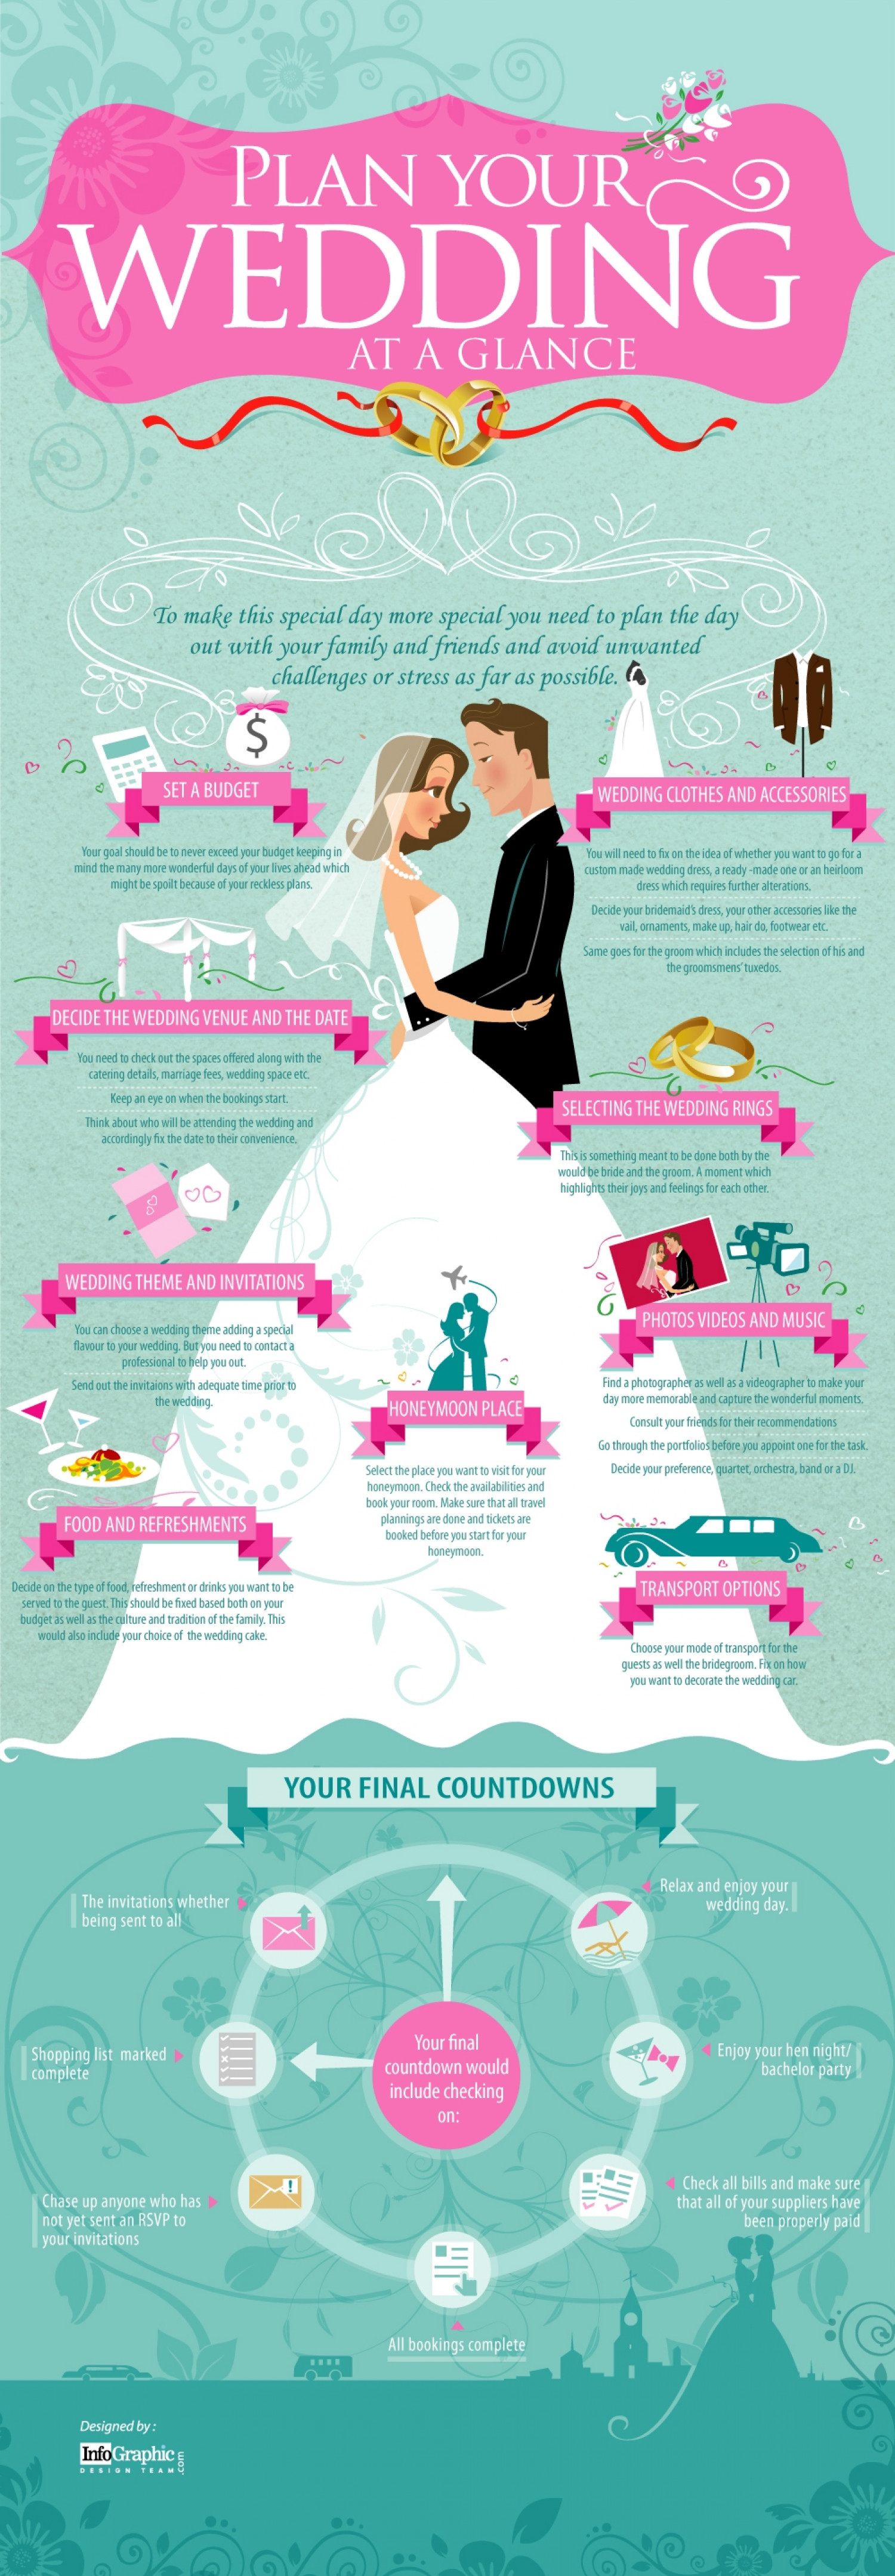 Plan your Wedding at a Glance Infographic